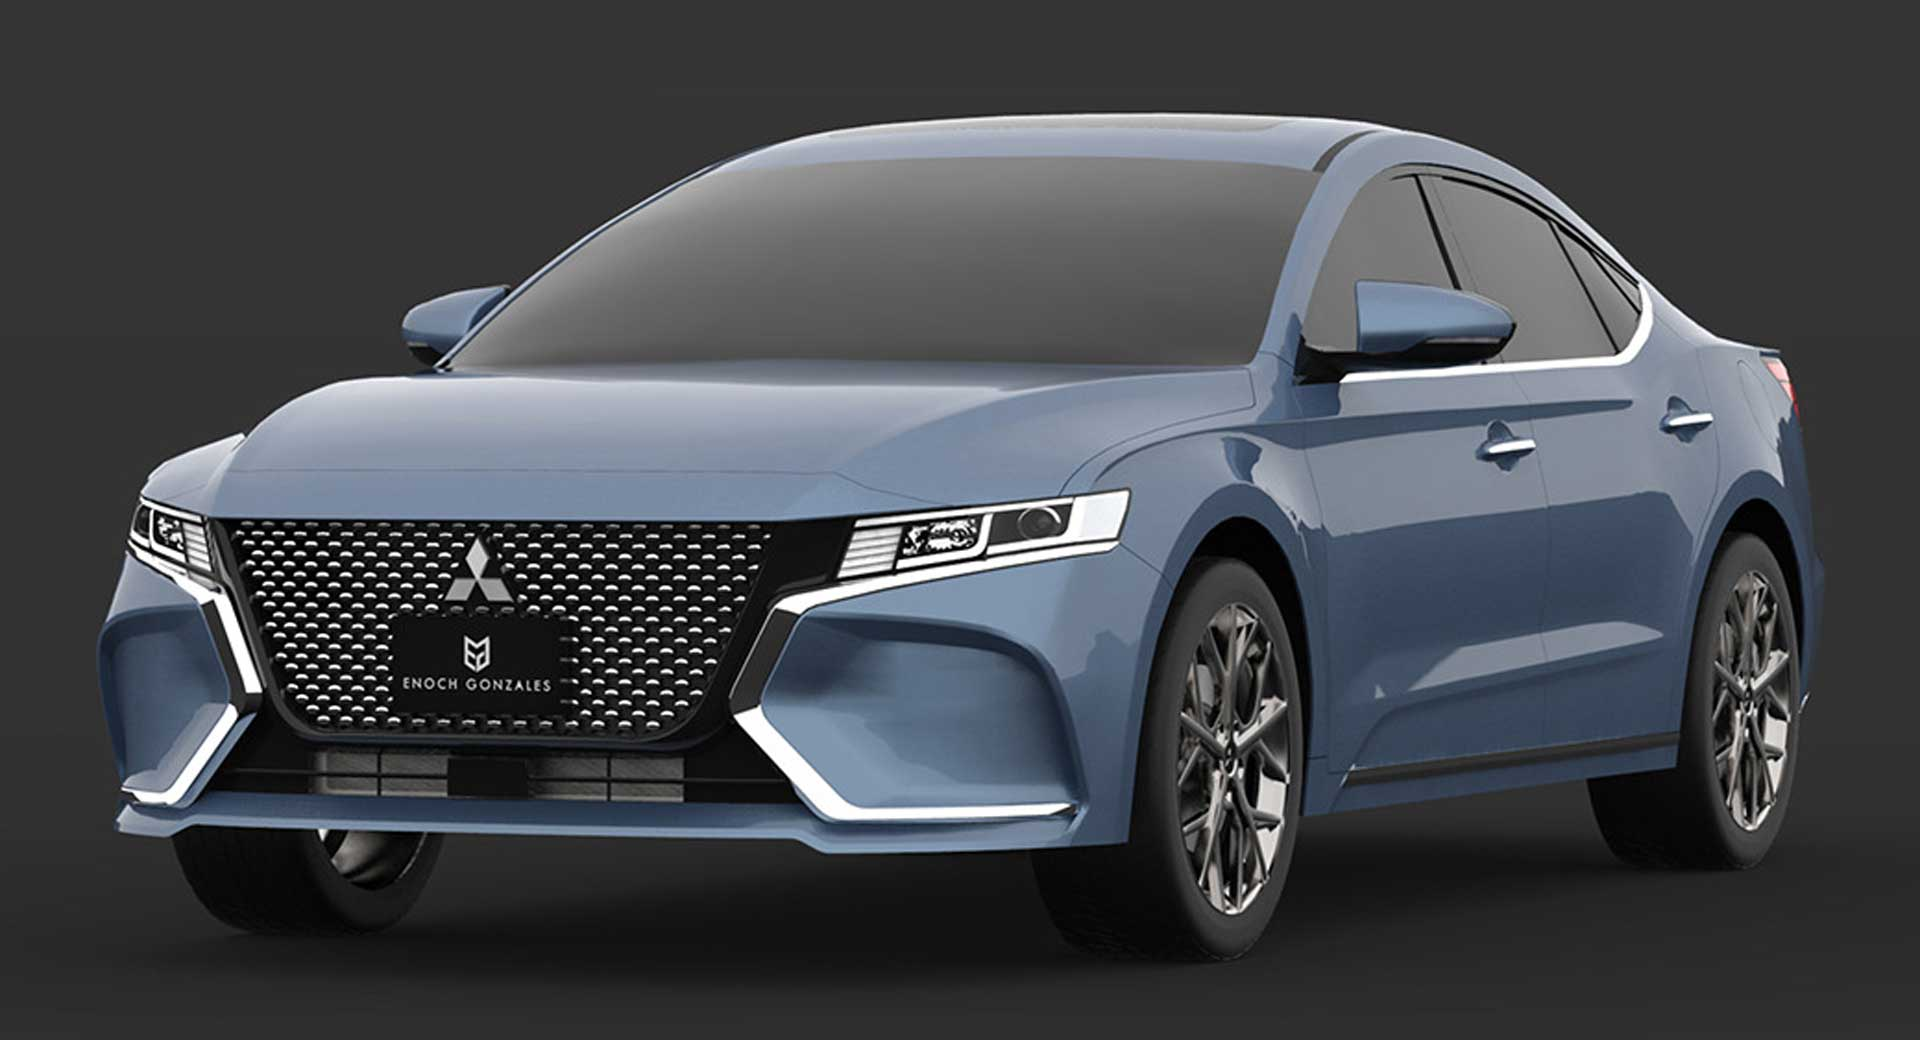 56 New 2020 Mitsubishi Galant Rumors